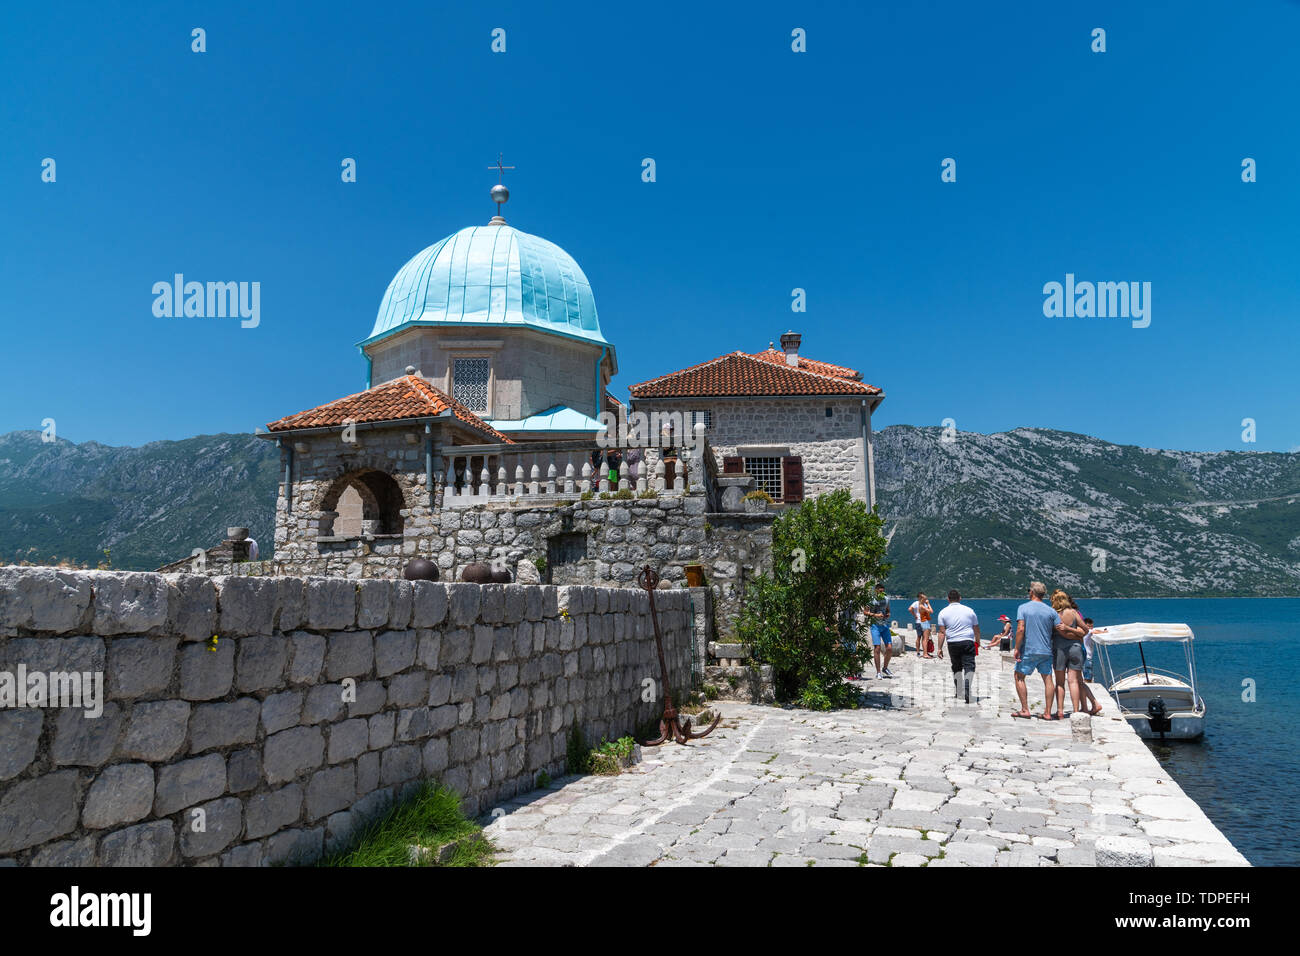 Perast, Montenegro - June 10. 2019: Church of Our Lady of Rocks on island of Gospa od Skrpjela. - Stock Image